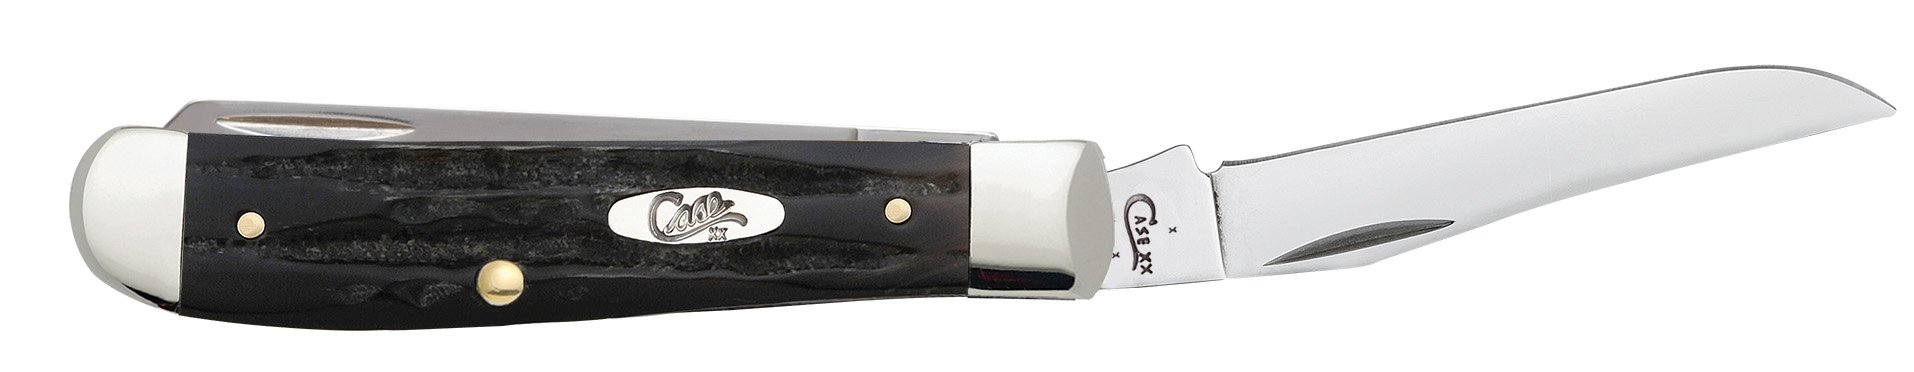 Case Buffalo Horn Mini Trapper Pocket Knife by Case (Image #4)